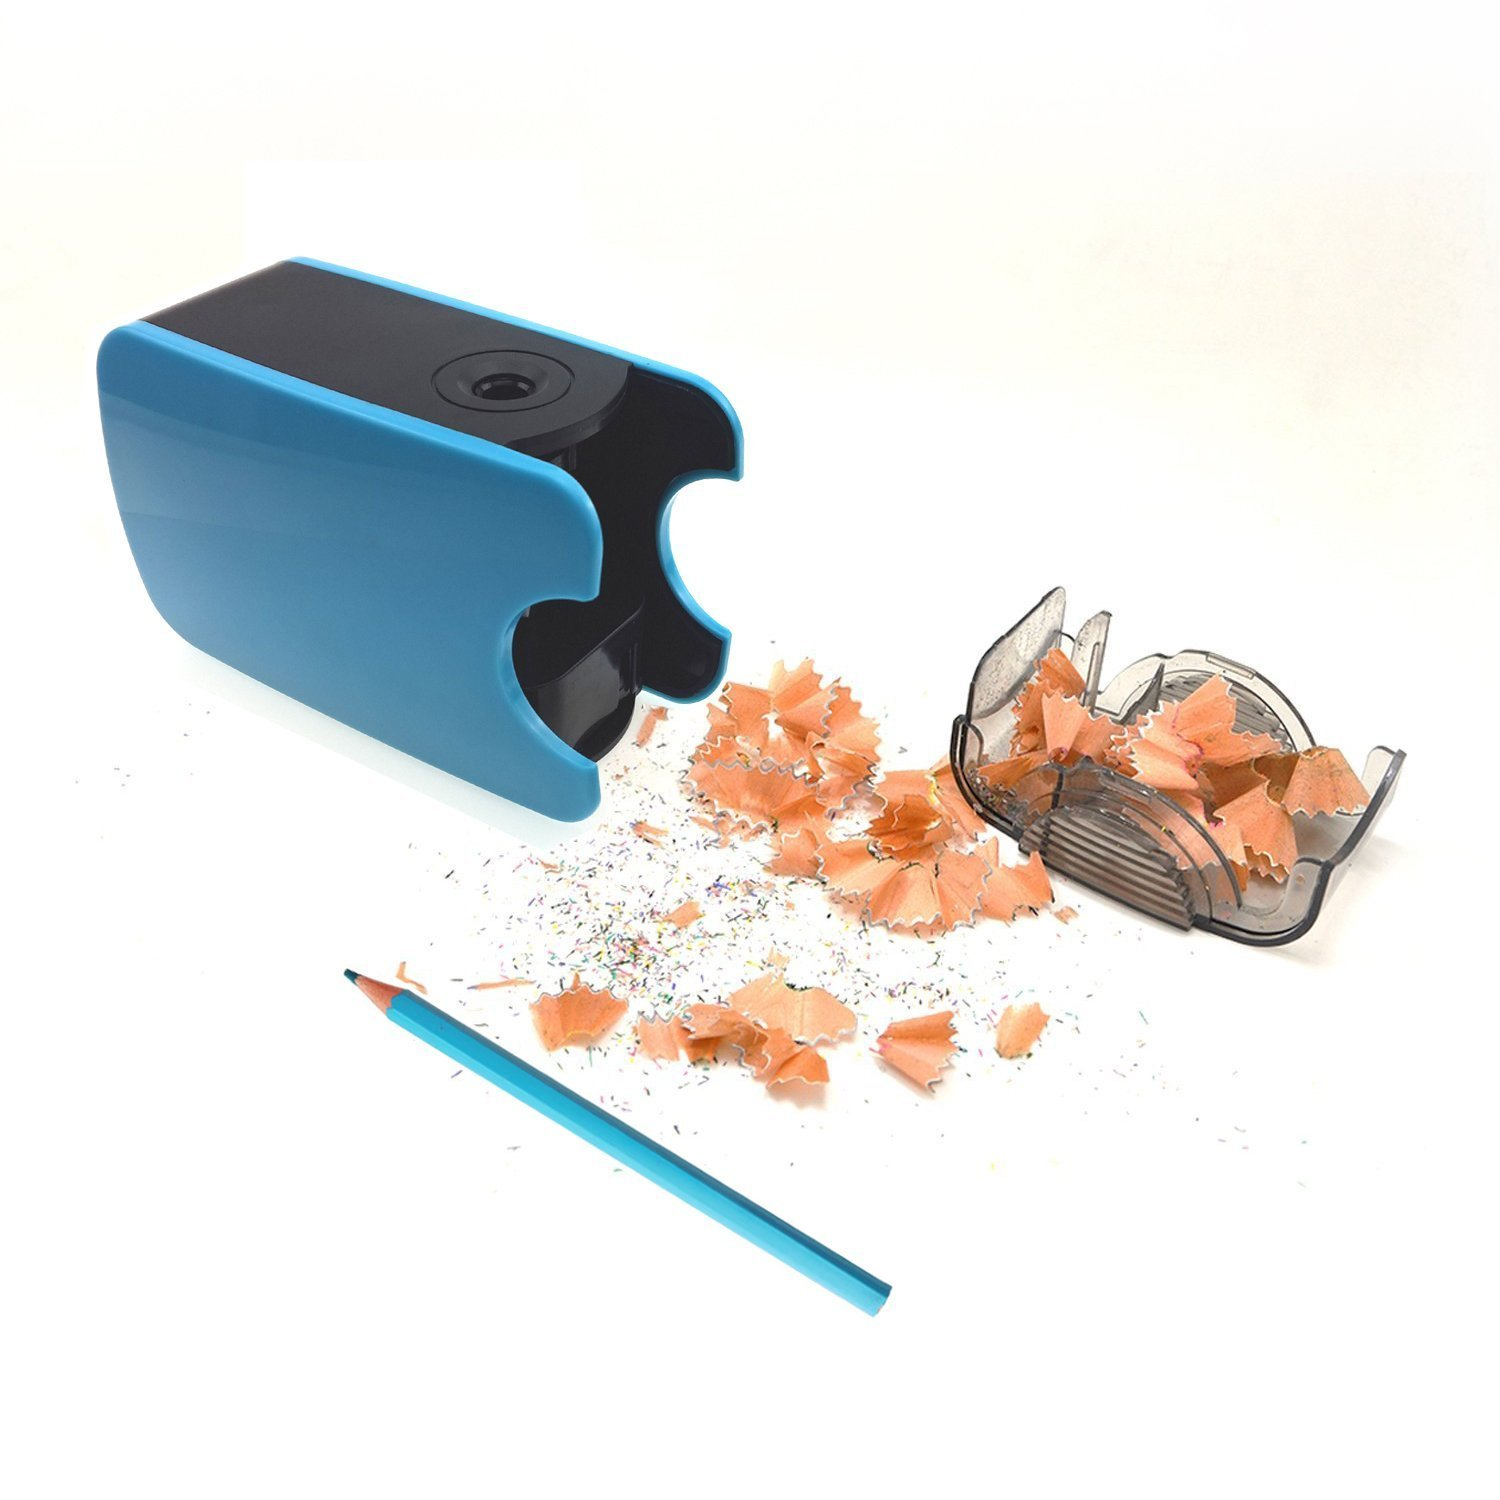 Generic Electric Pencil Sharpener Great for Office School & Kids